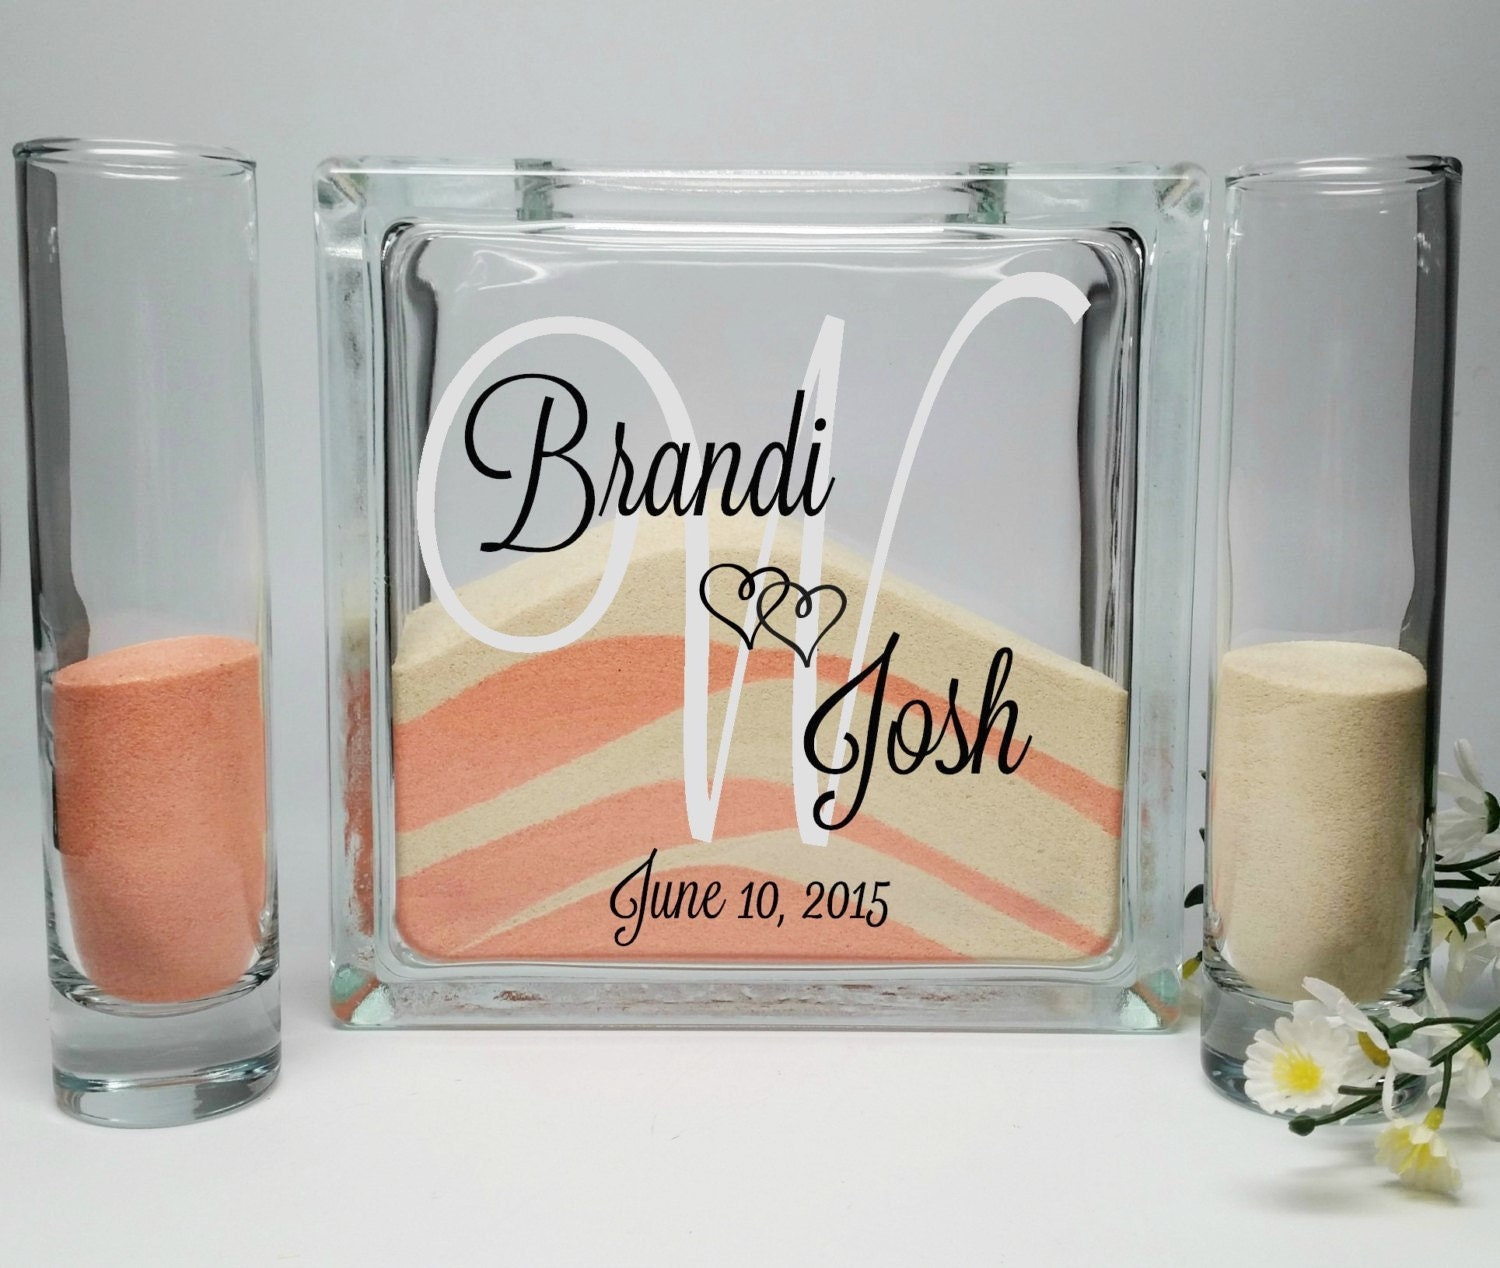 Beach Wedding Candle Ceremony: Sand Ceremony Set Unity Sand Vase Sand Shadow Box Kit